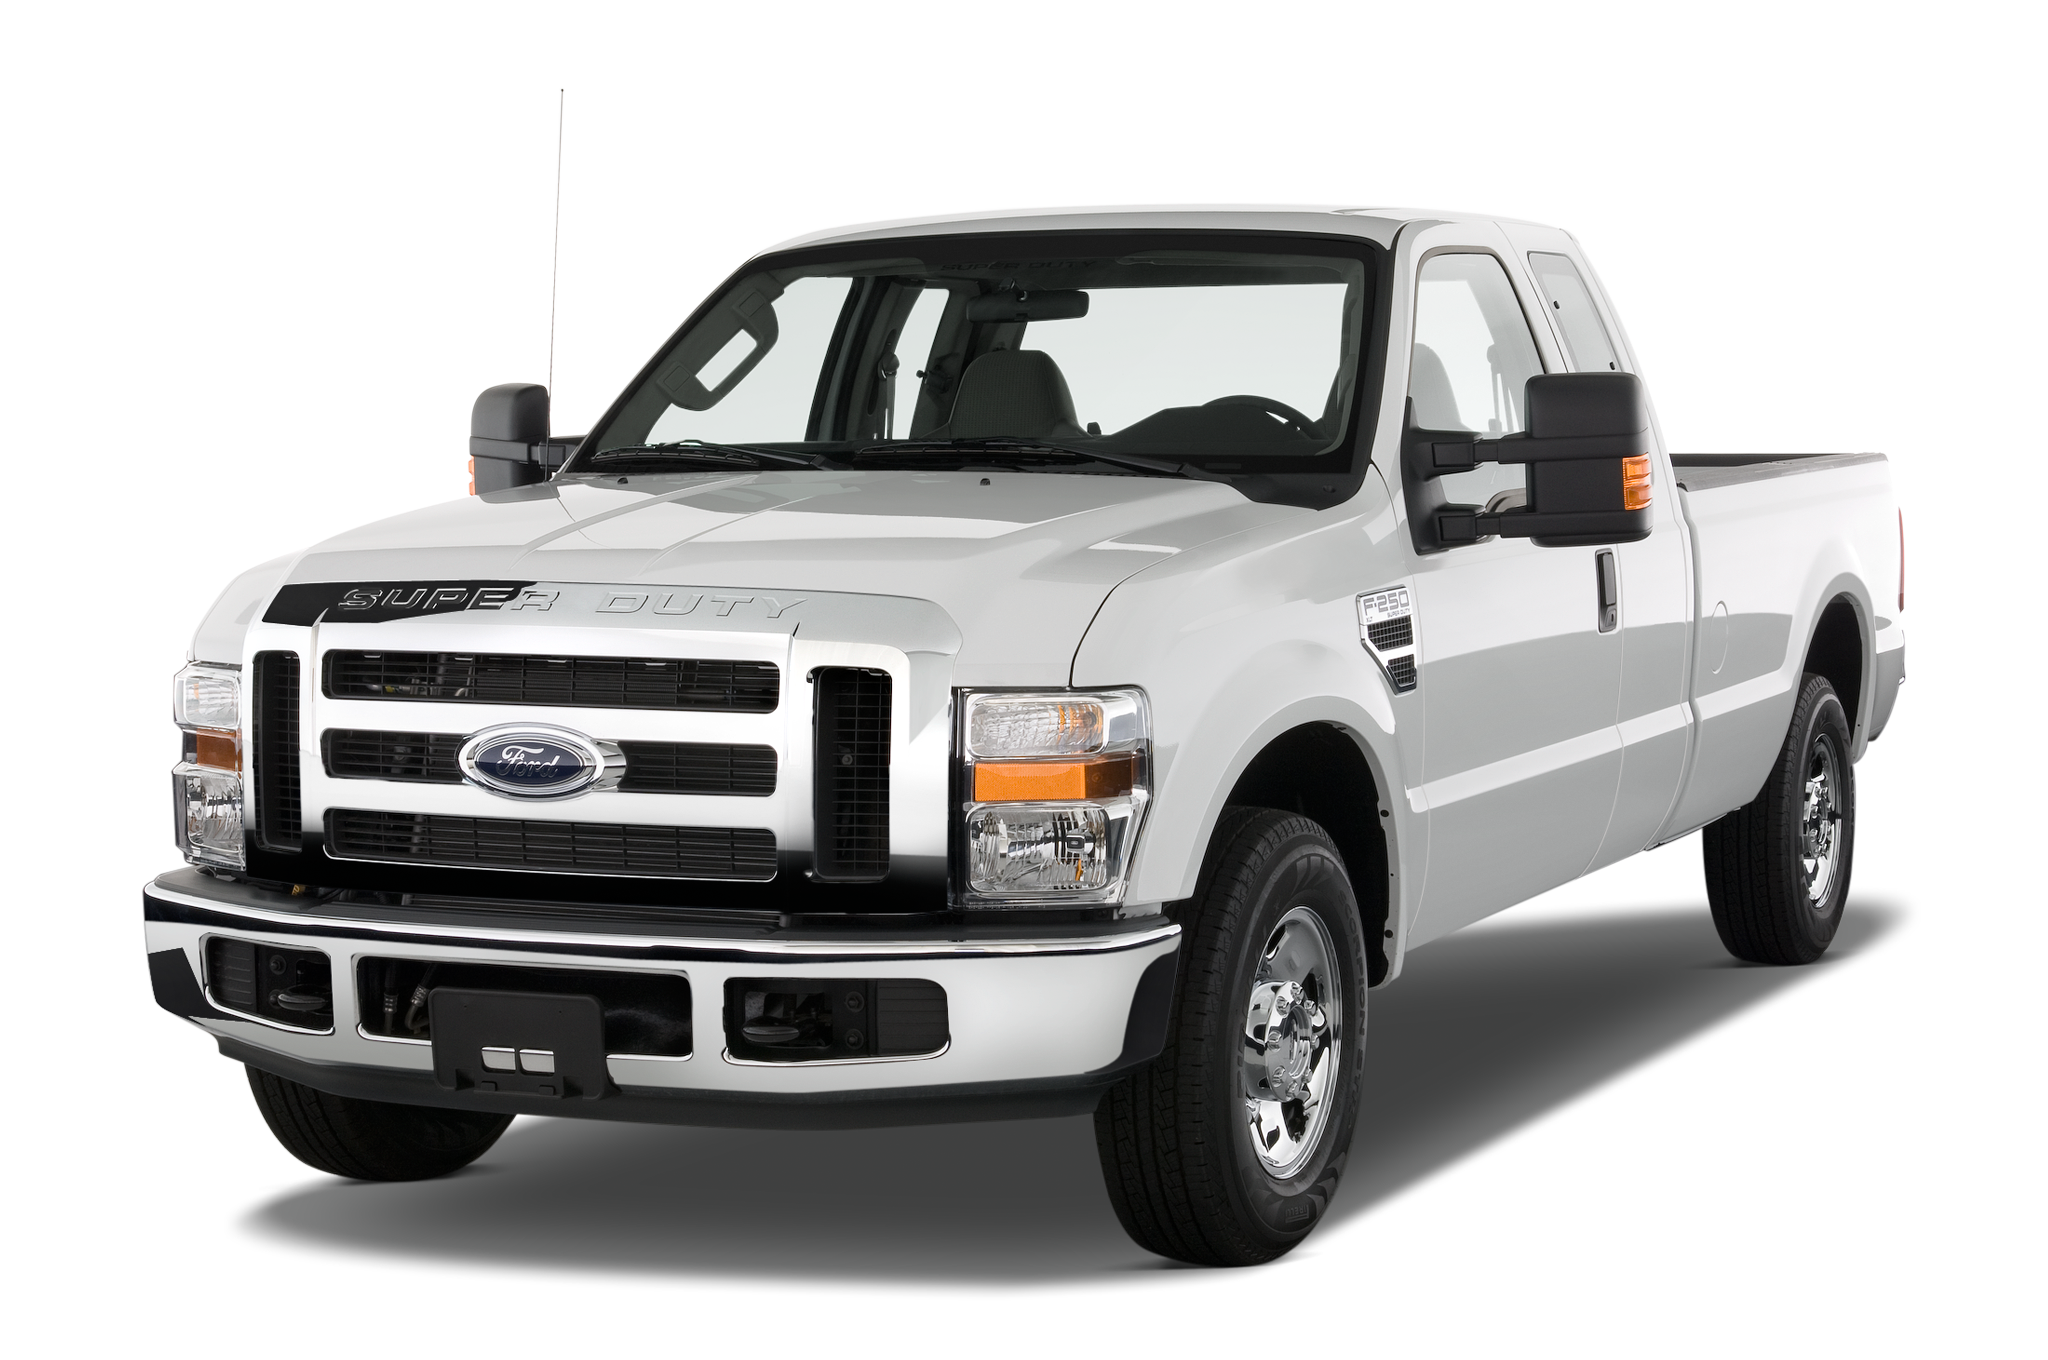 Ford Towing Guide >> 2011 Ford F-250 King Ranch 4x4 - Automobile Magazine